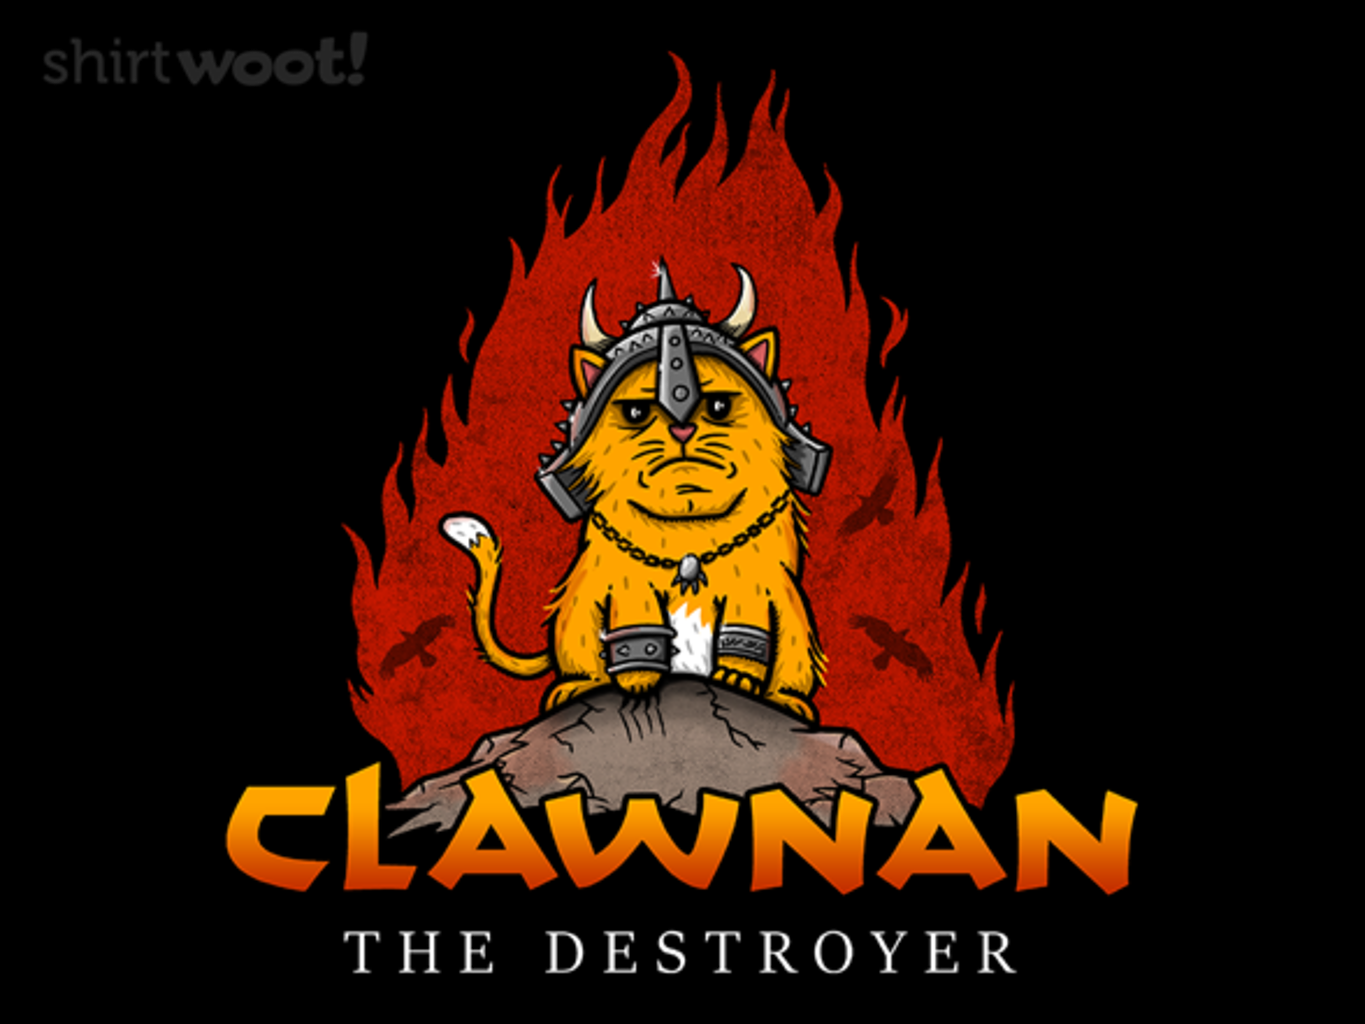 Woot!: Clawnan the Destroyer